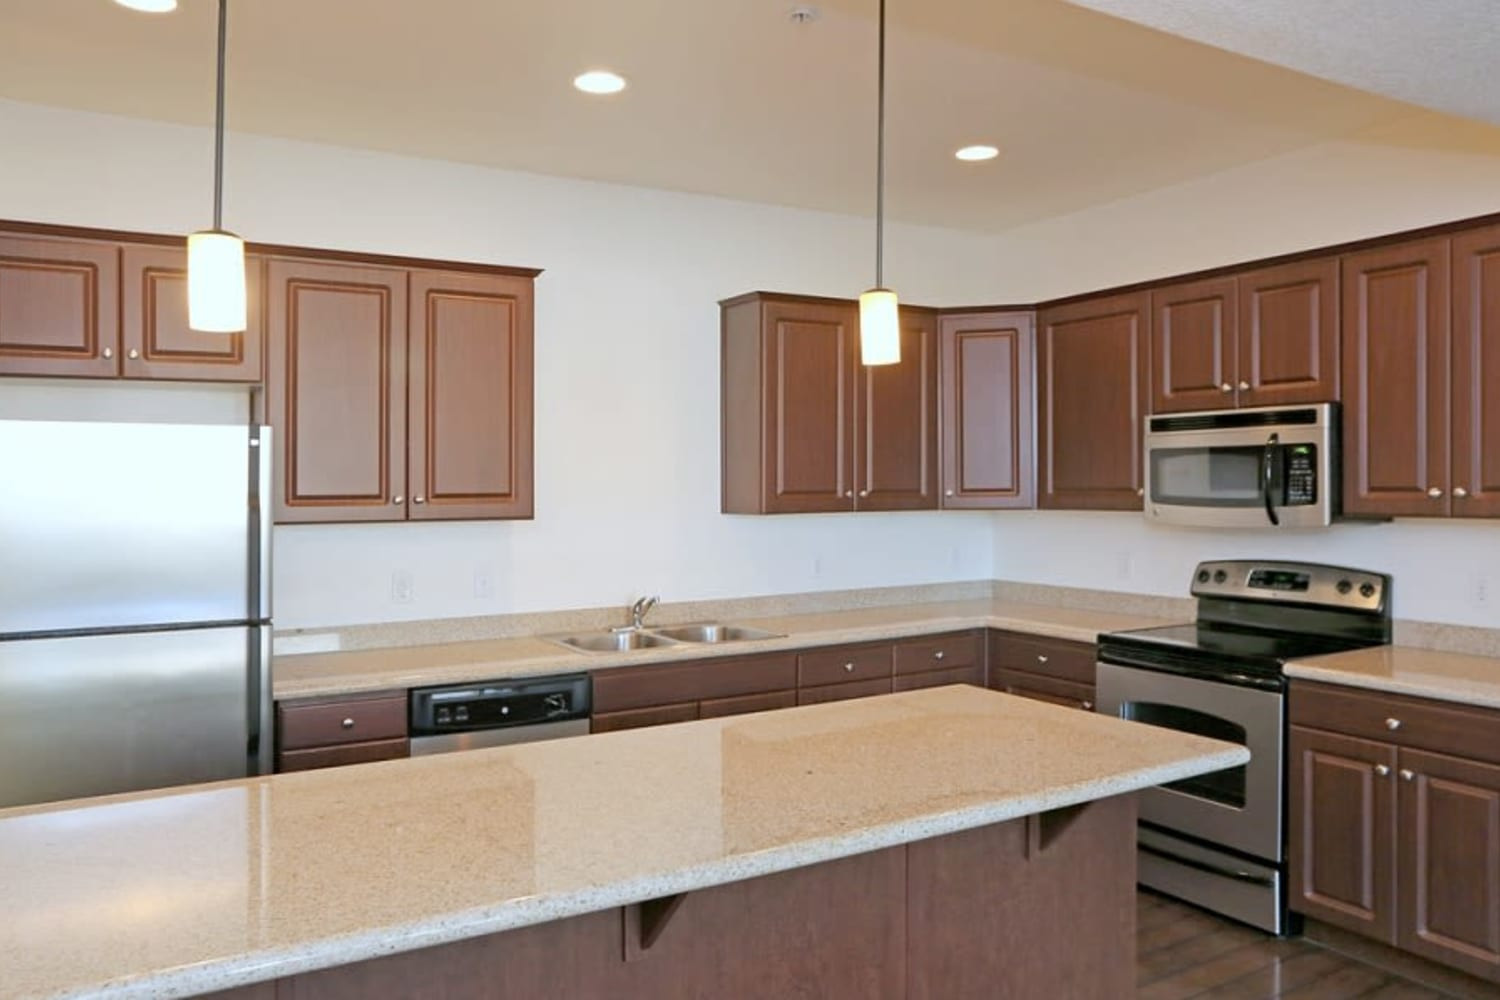 Kitchen with wooden cabinetry at San Marquis in Tempe, Arizona